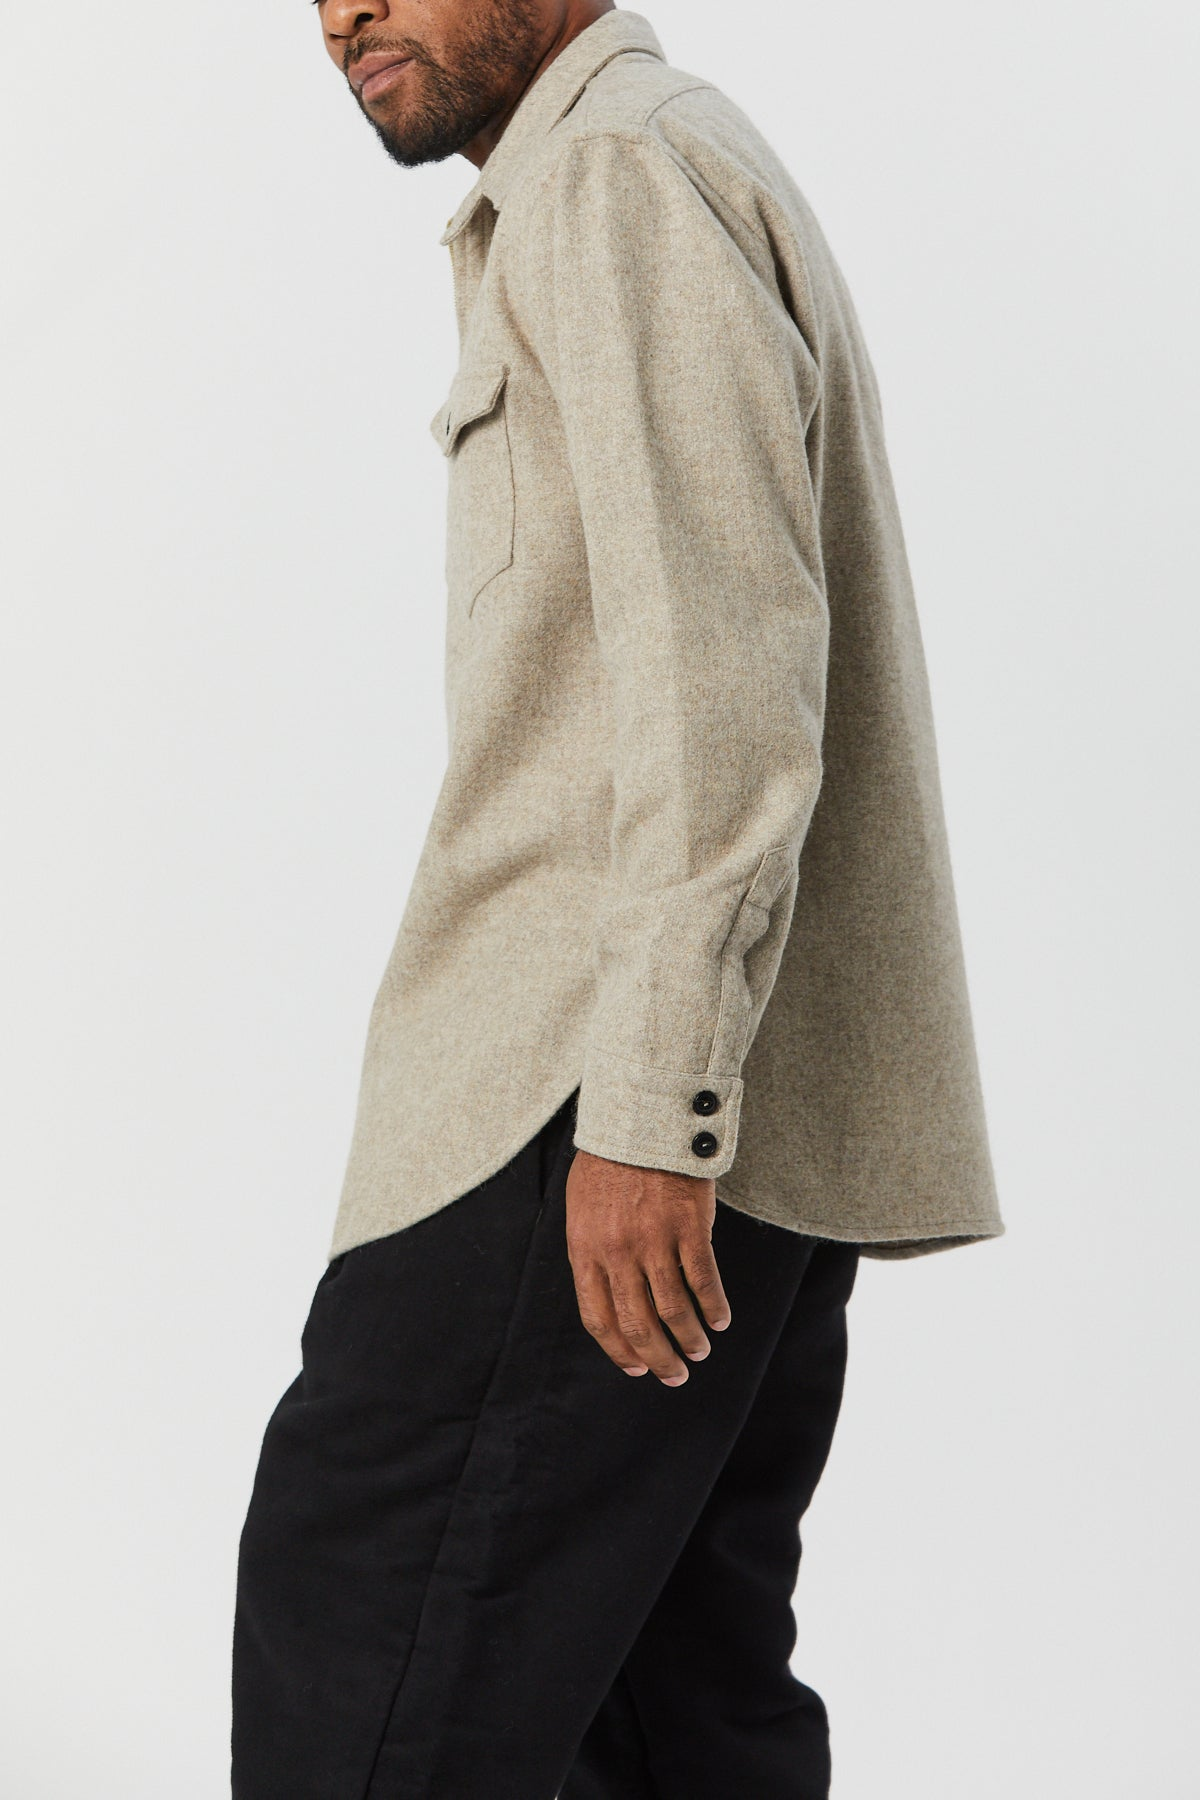 PACKARD ZIP PULLOVER IN SAND - Fortune Goods